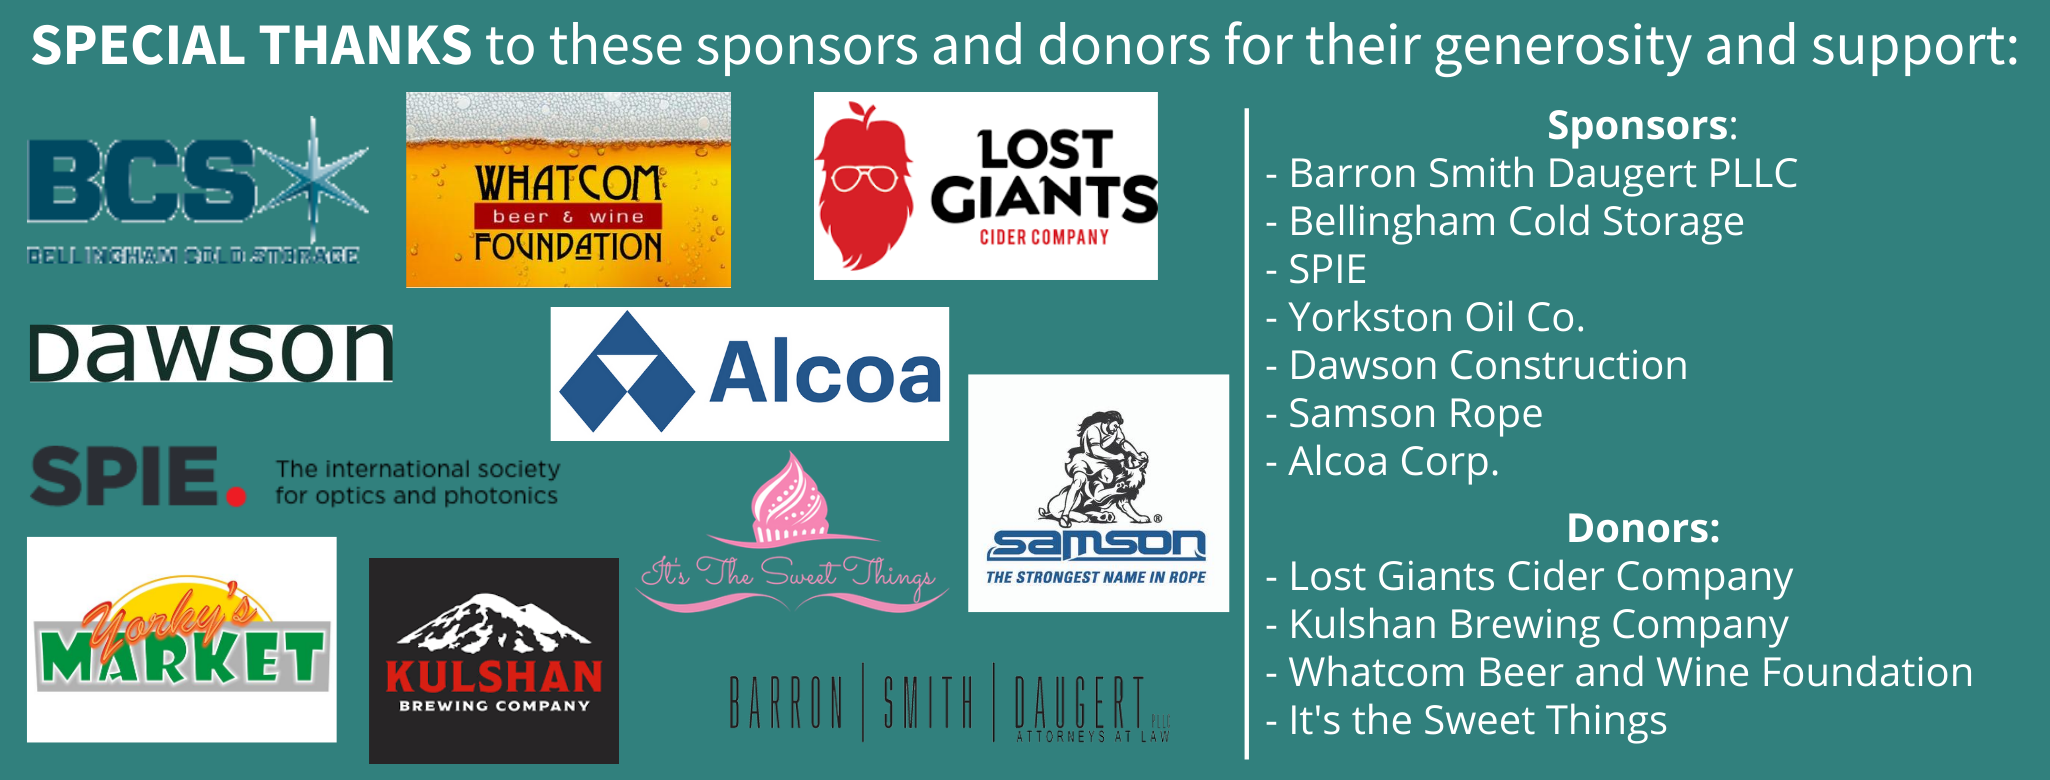 LB Sponsors and Donors.png